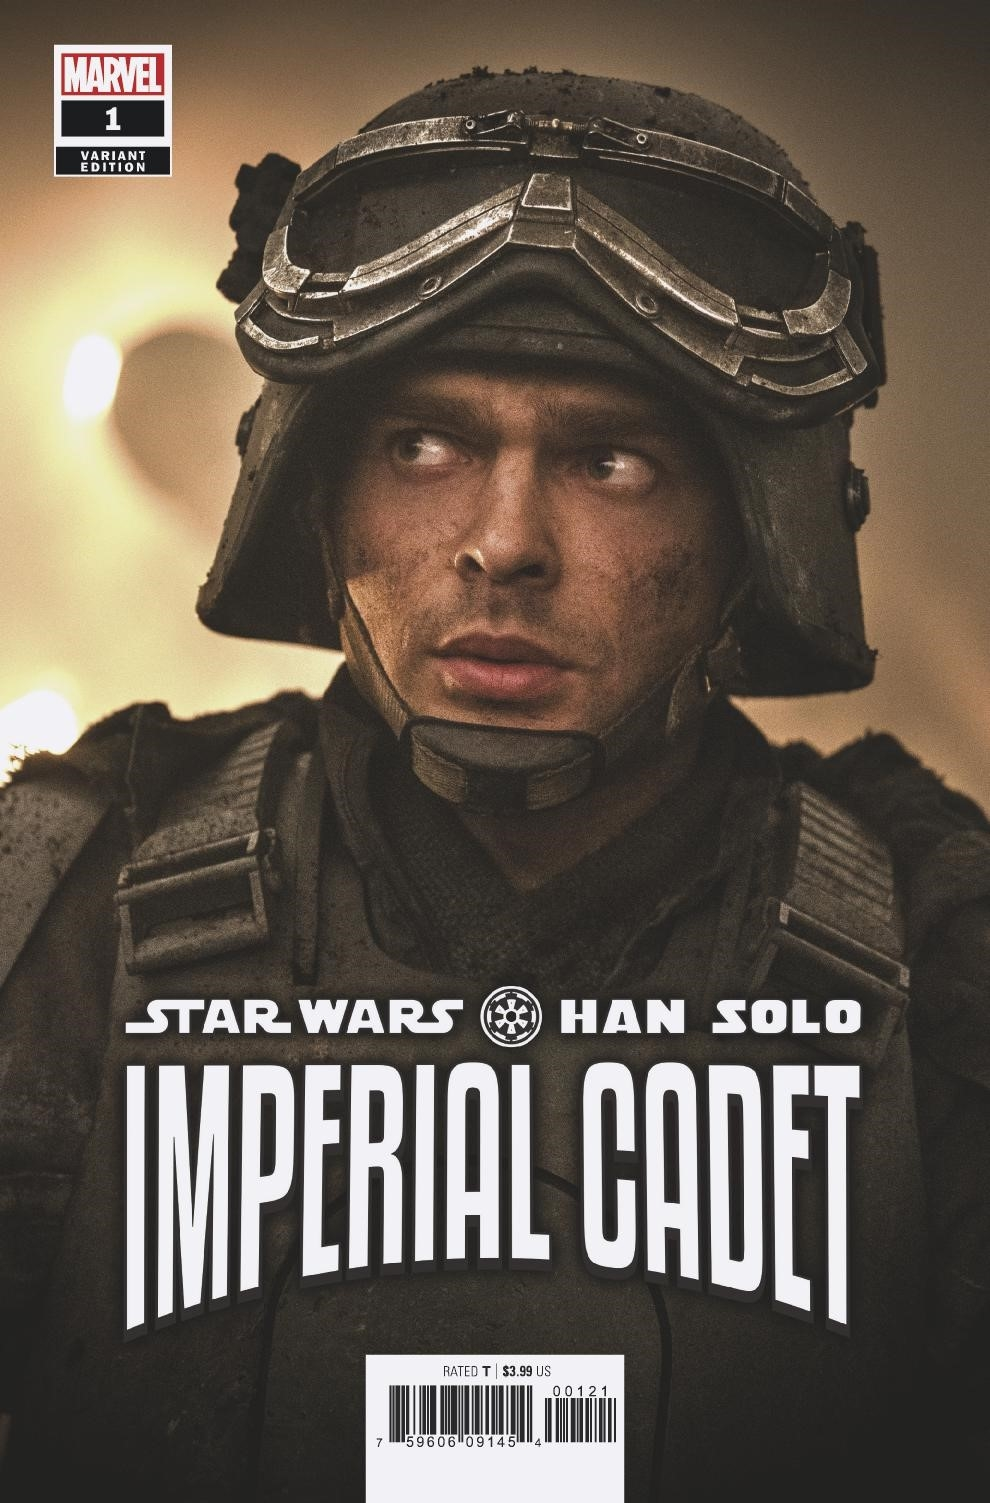 Han Solo: Imperial Cadet #1 (Movie Variant Cover) (07.11.2018)